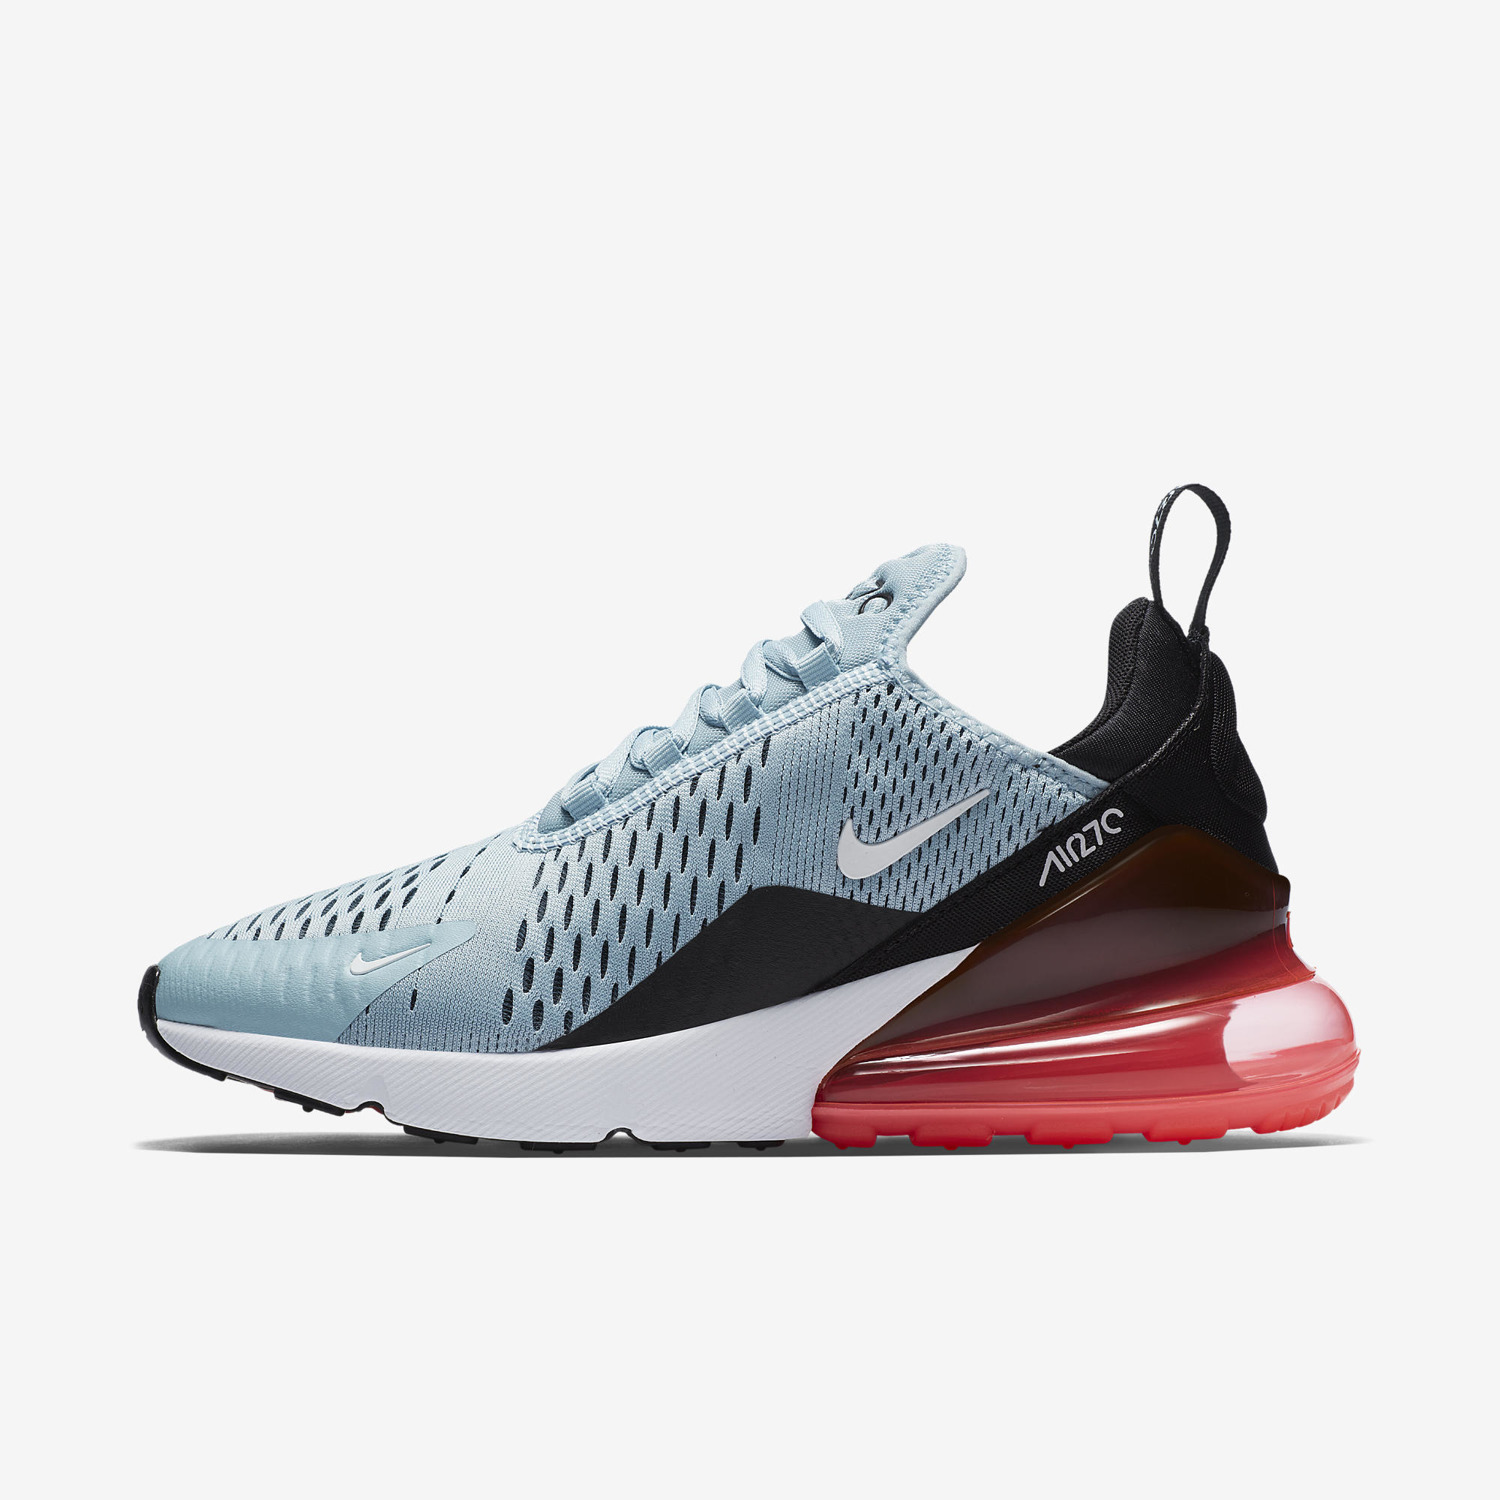 finest selection 6d1b6 7192f Buty damskie Nike Air Max 270 Ocean Bliss AH6789 400 .